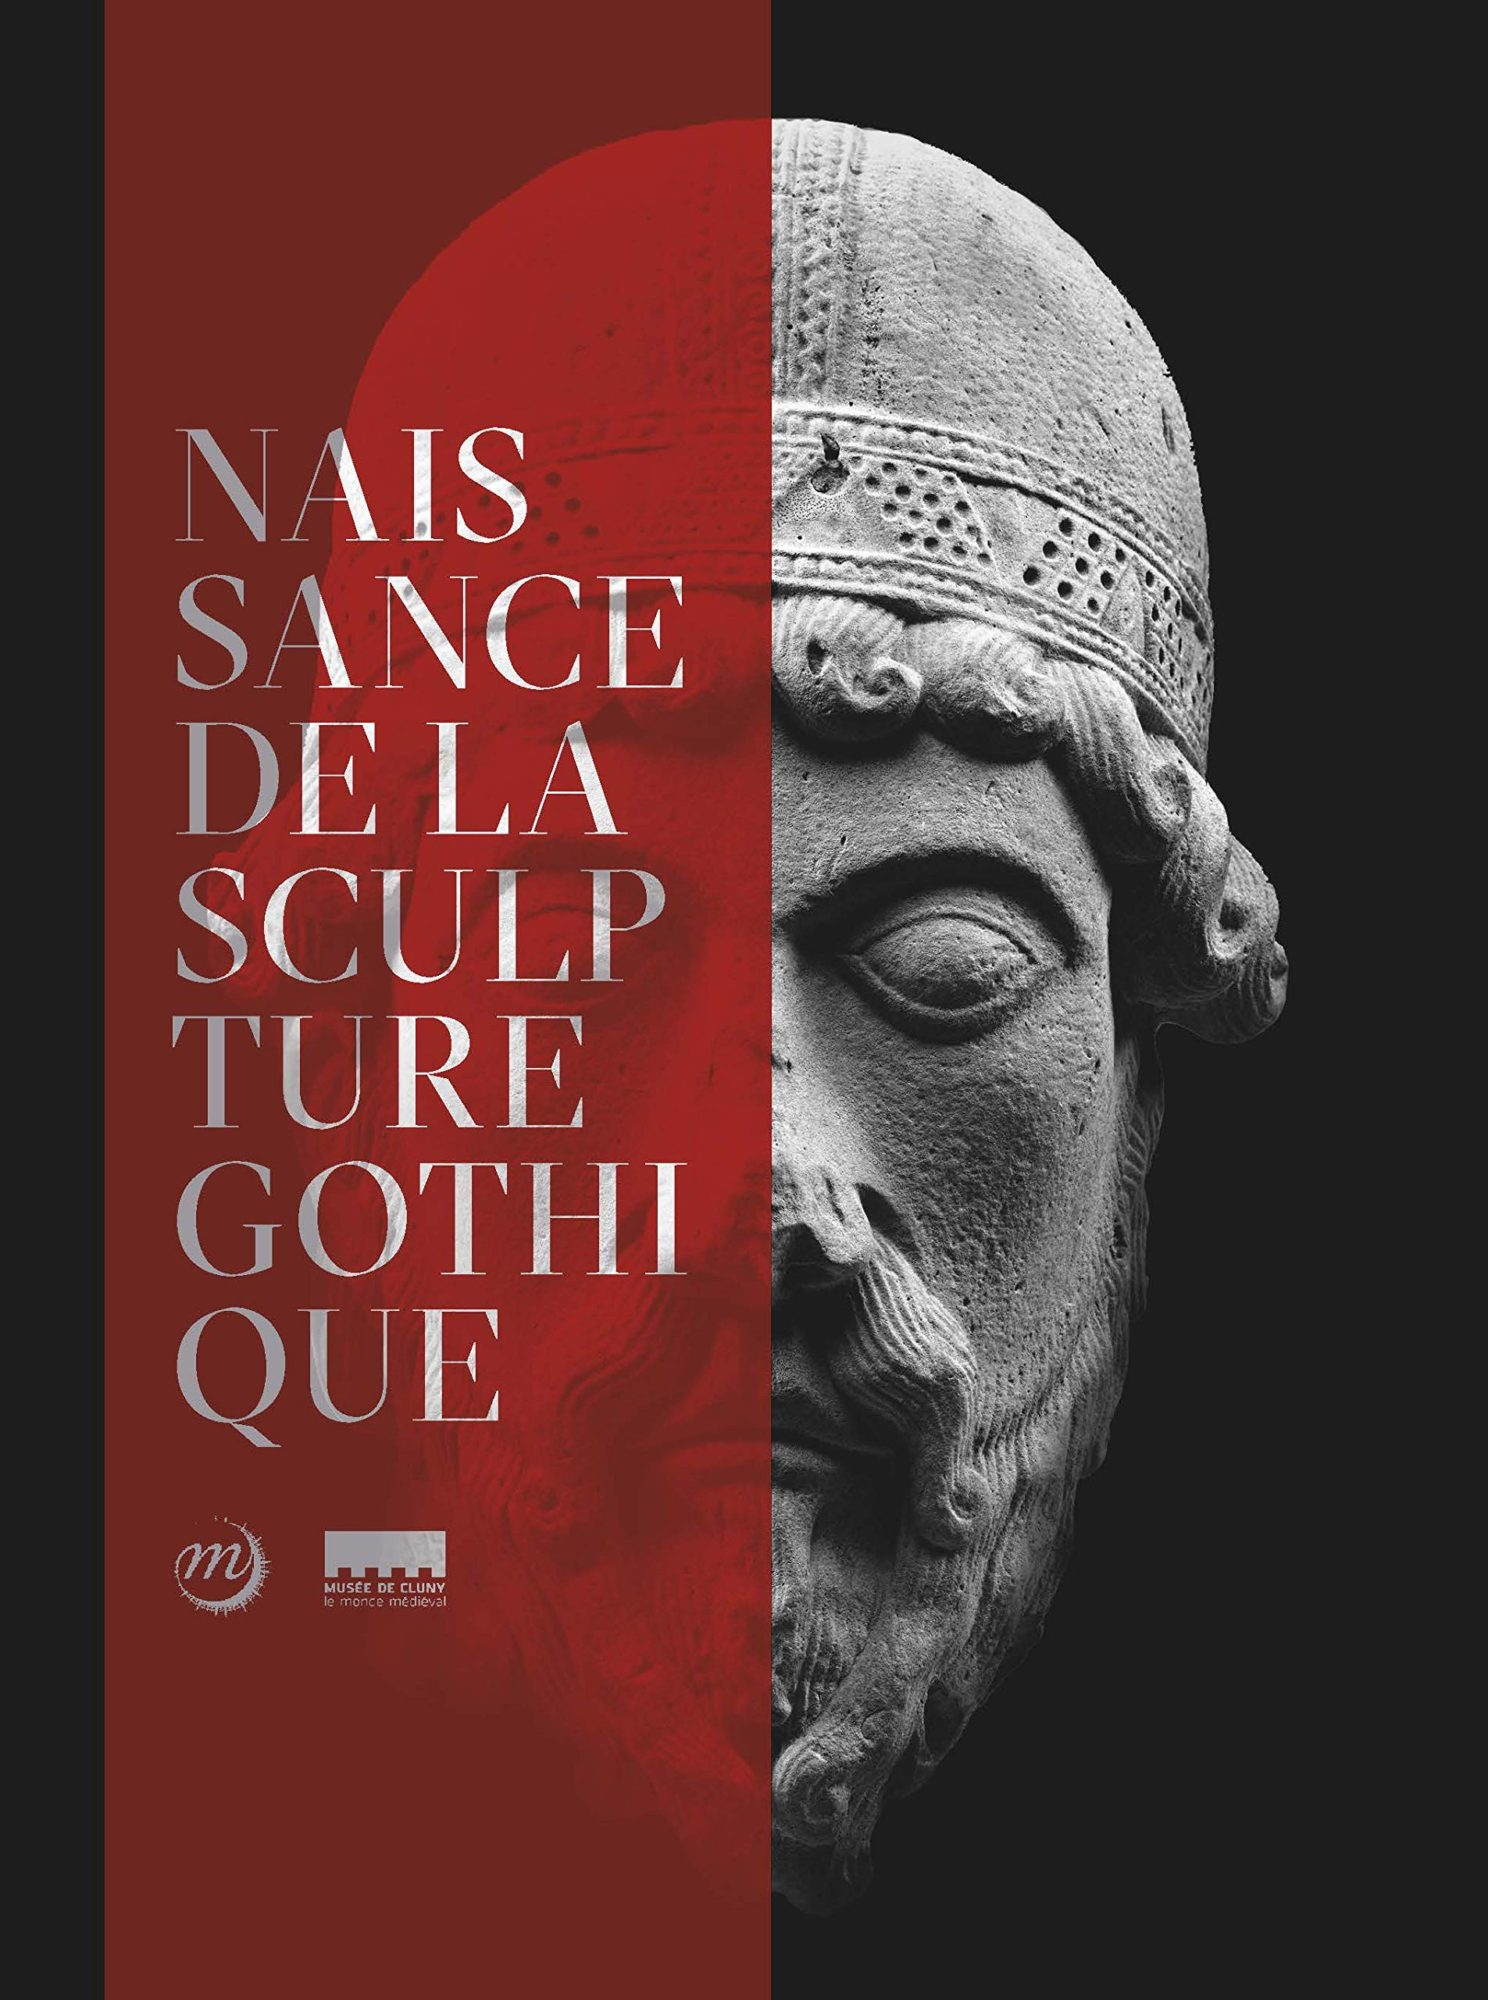 Catalogue La naissance de la sculpture gothique en Ile de France. RMN 2018